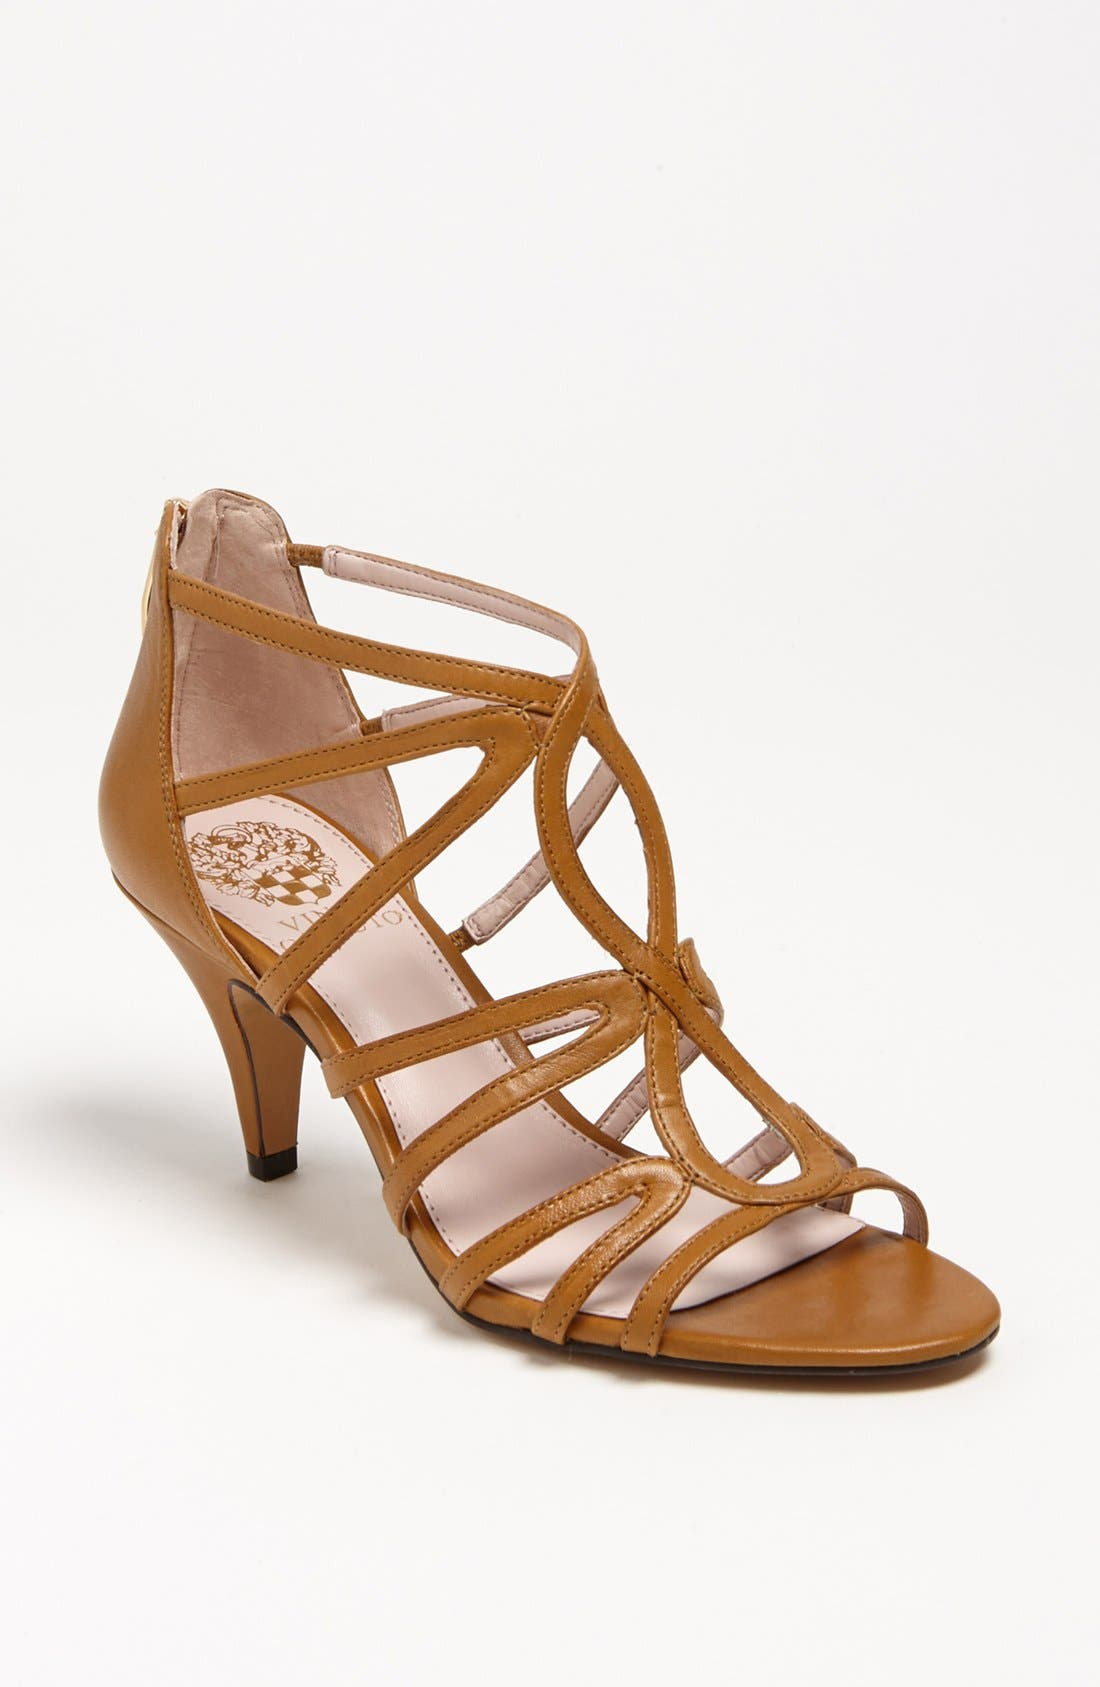 Alternate Image 1 Selected - Vince Camuto 'Massi' Sandal